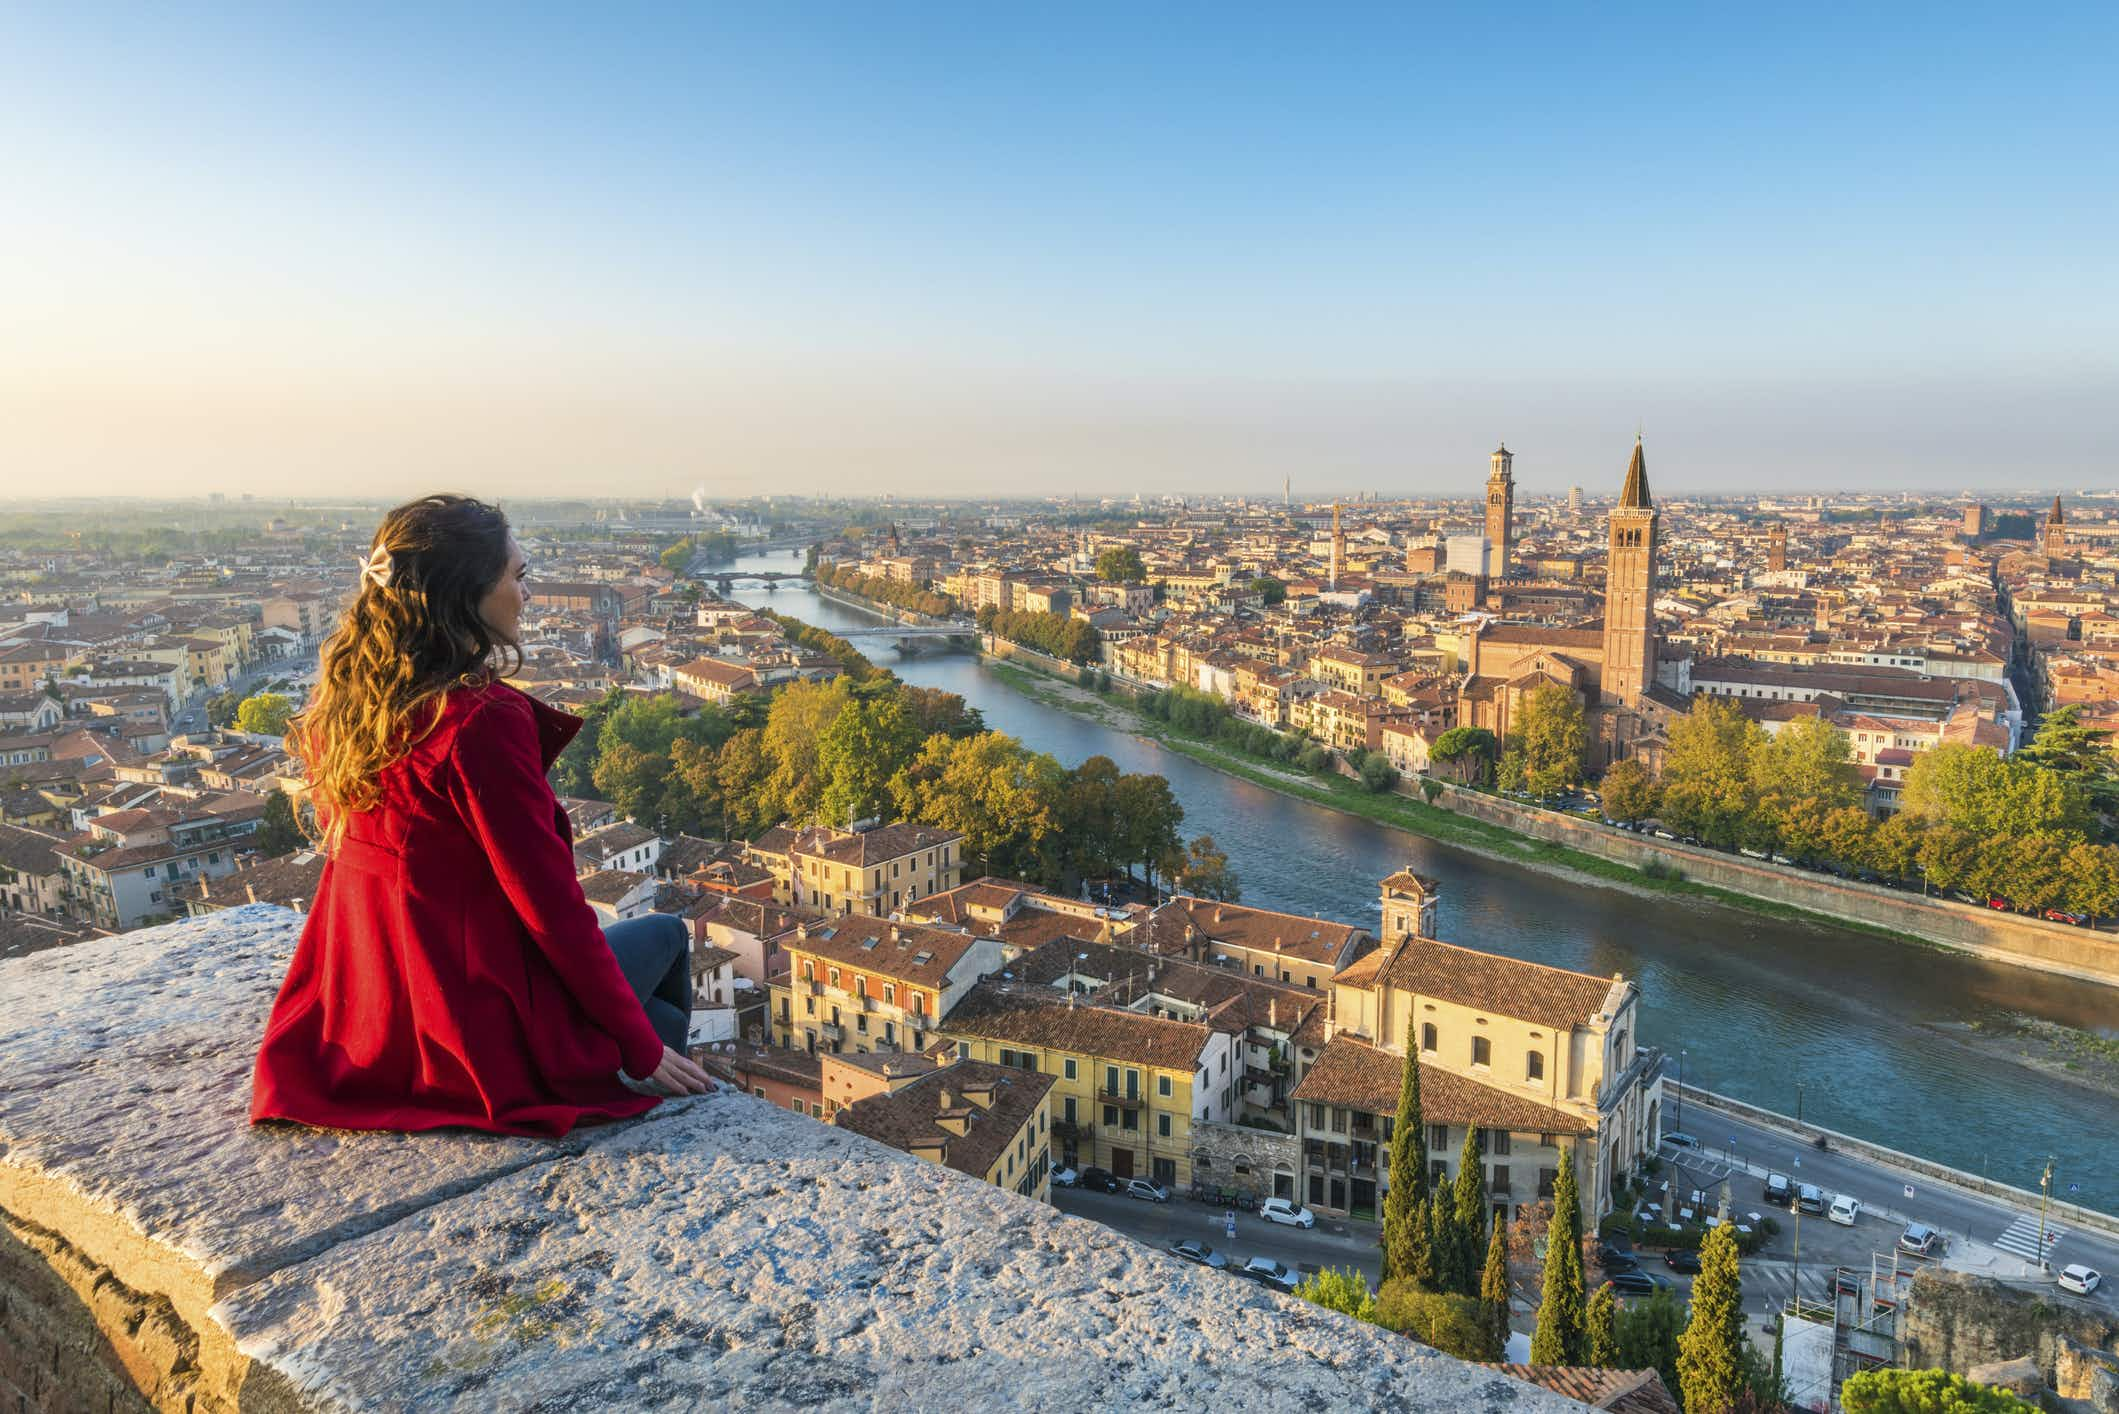 Trace your Italian roots back generations with this personalised ancestor's tour